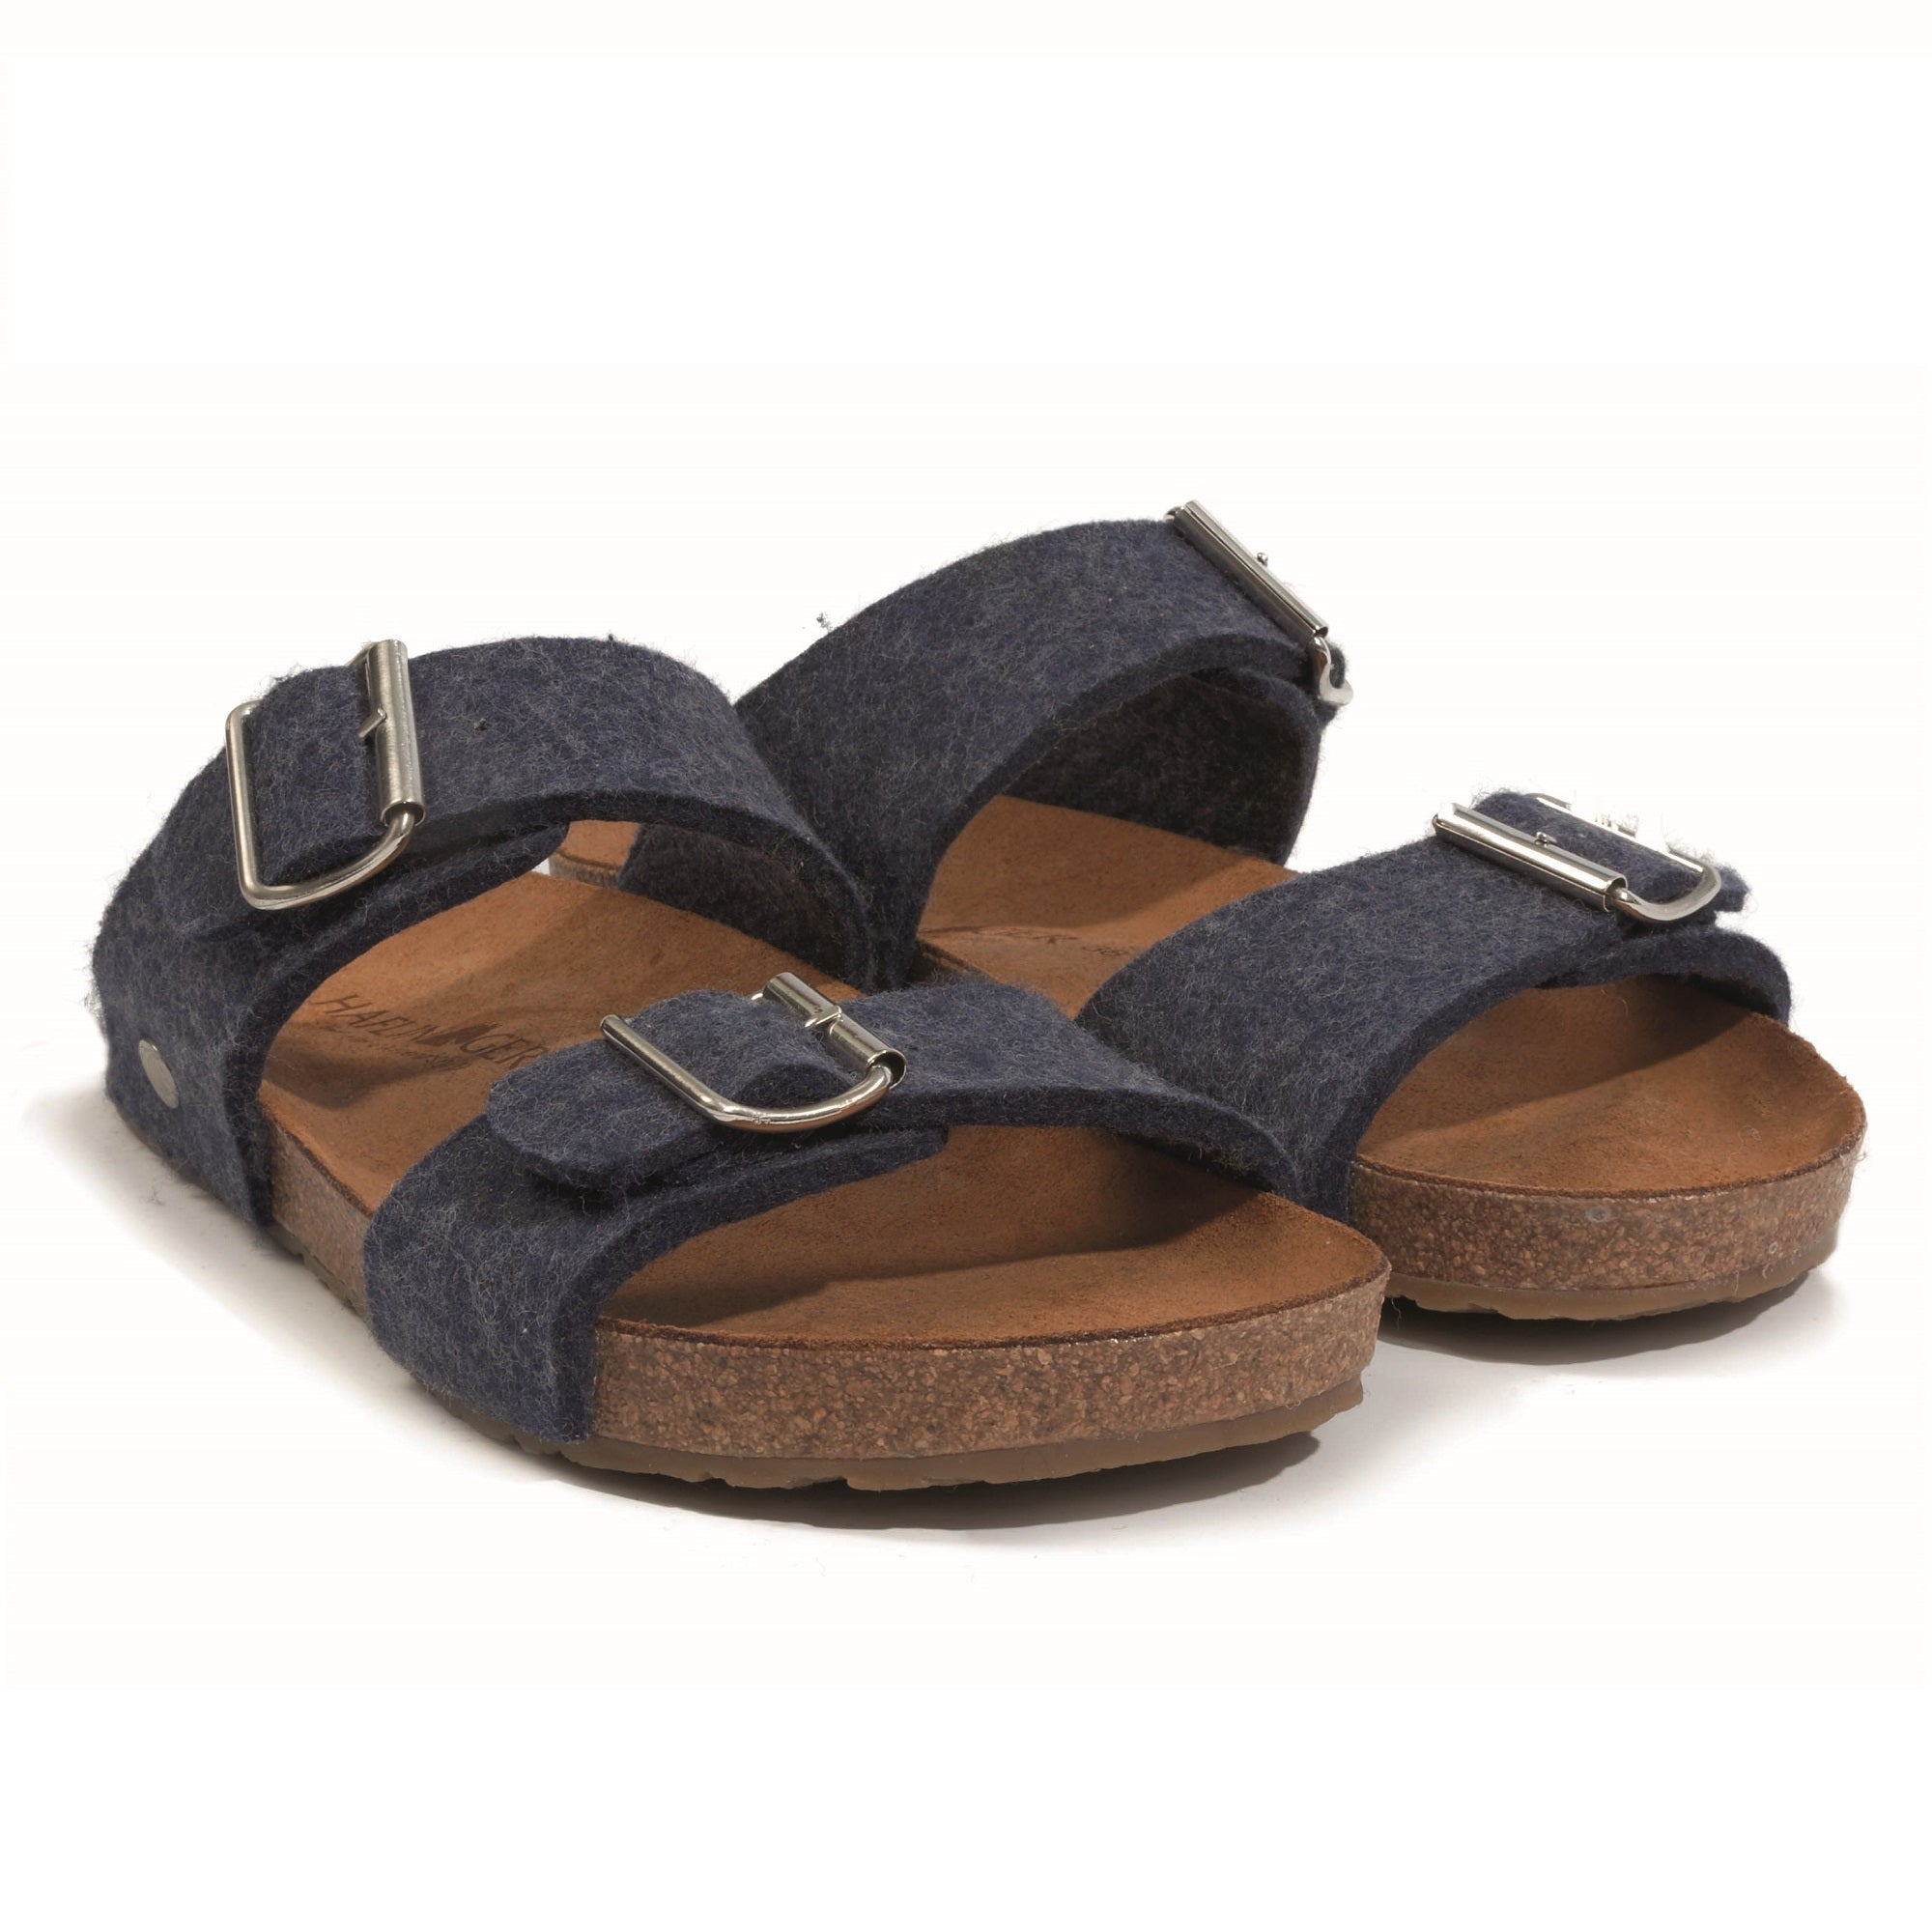 Haflinger Women's Anabel Boiled Wool Sandal - Denim